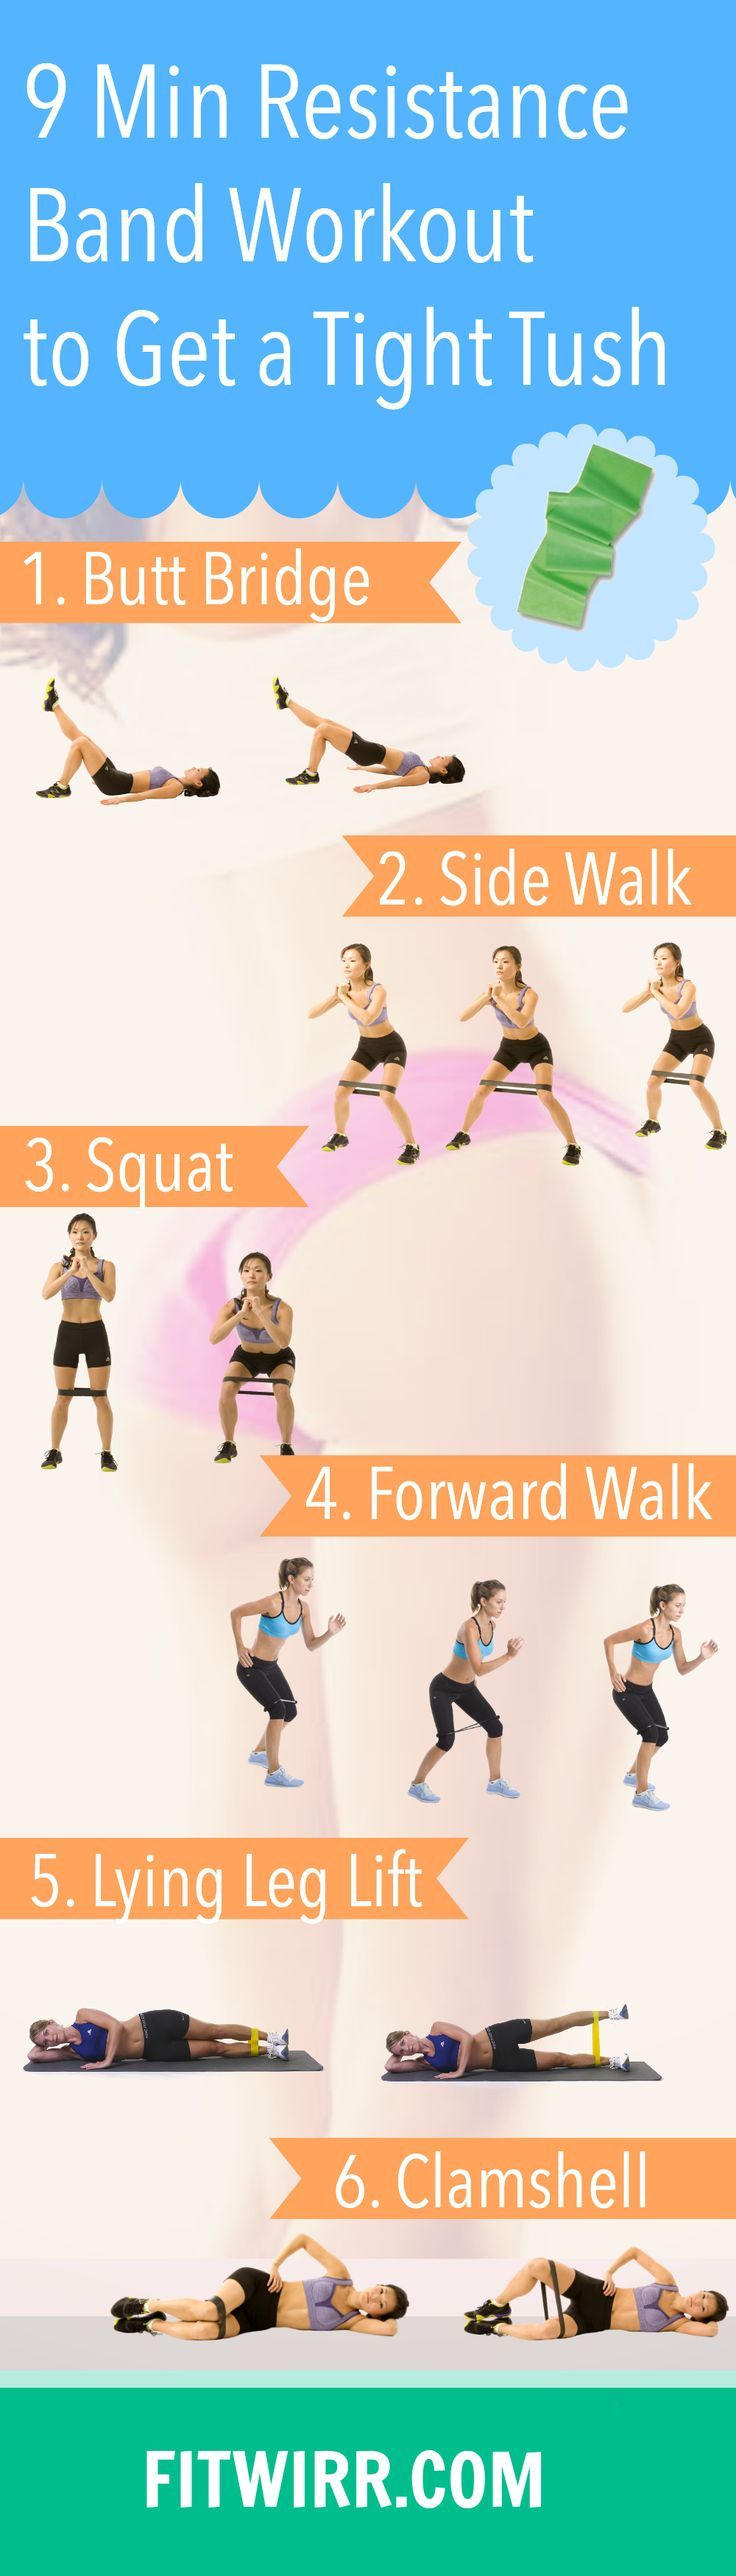 9-Minute Bikini Workout with Resistance Band To Get A Tight Tush. 6 exercise band workouts to tone up your lower body.